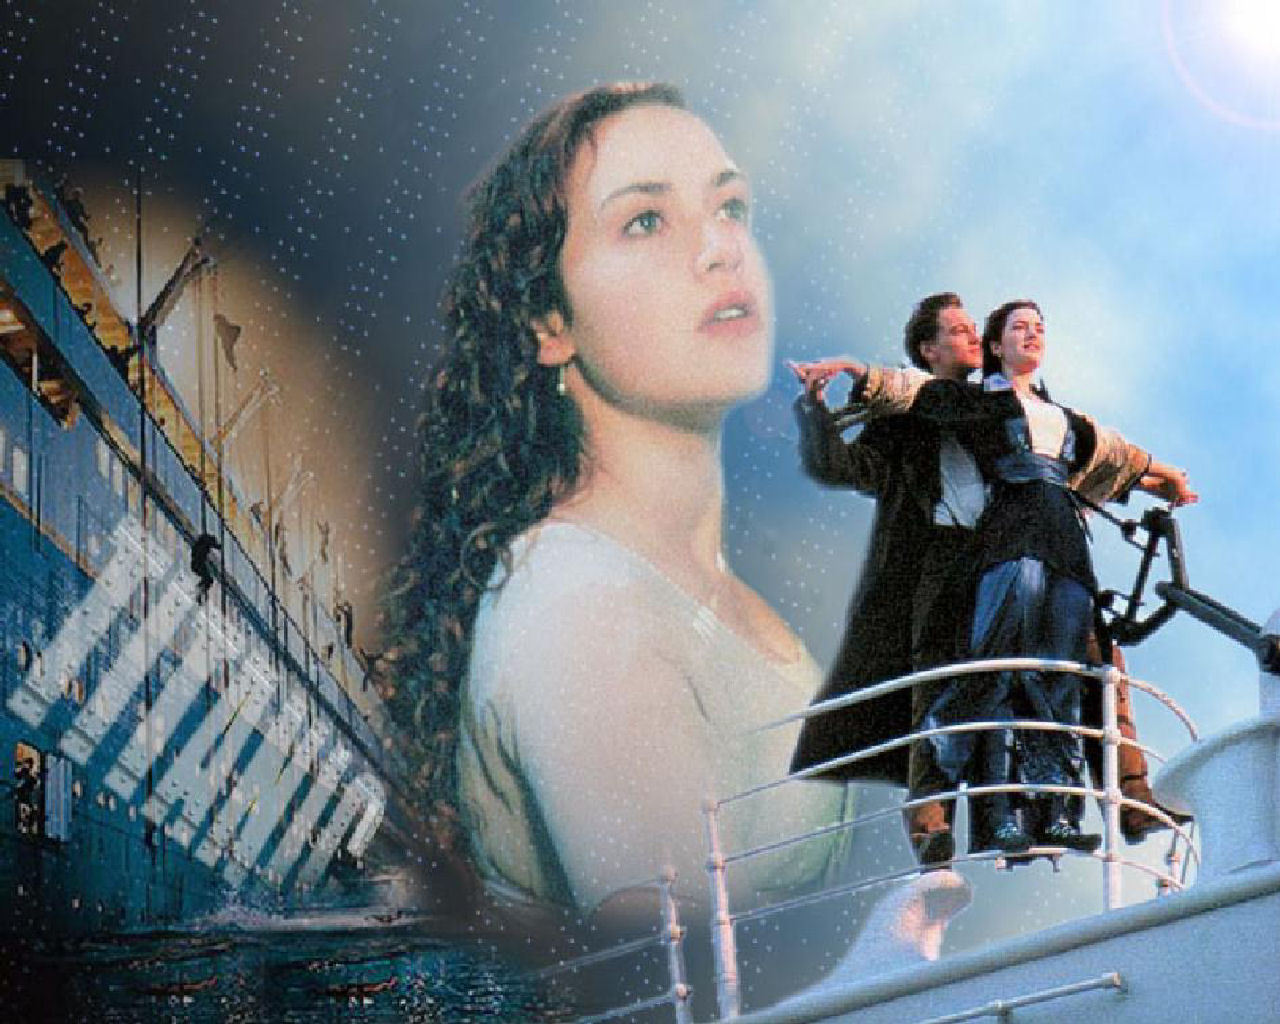 Free Movie wallpapers     DOWNLOAD Titanic Movie ONLINE WALLPAPERSTitanic Movie Wallpaper